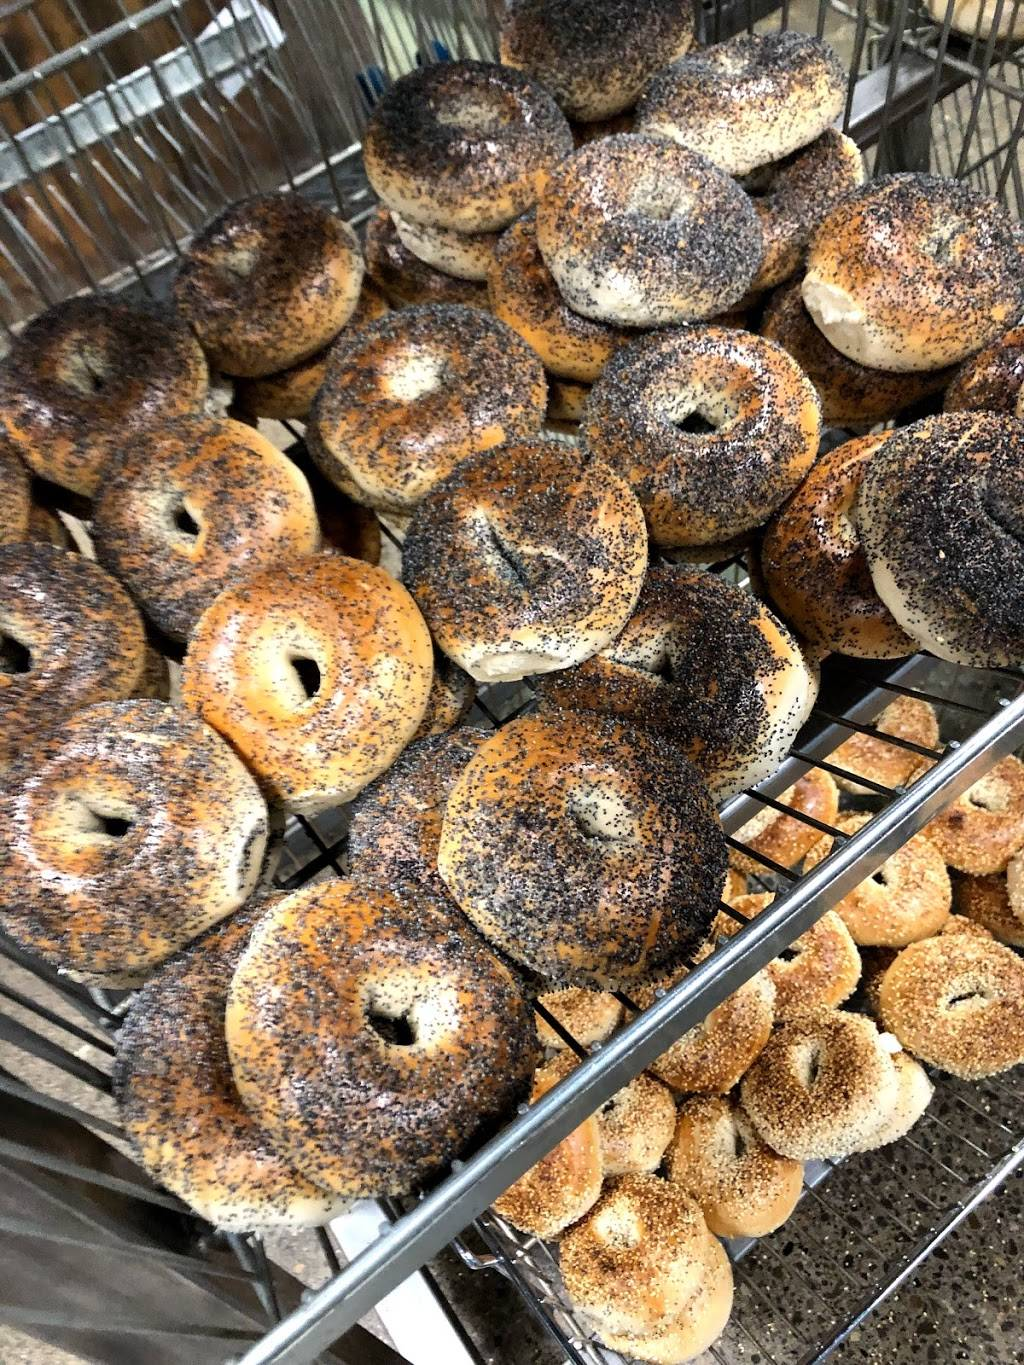 What A Bagel   bakery   4884 Dufferin St #7, North York, ON M3H 5T4, Canada   4164779198 OR +1 416-477-9198